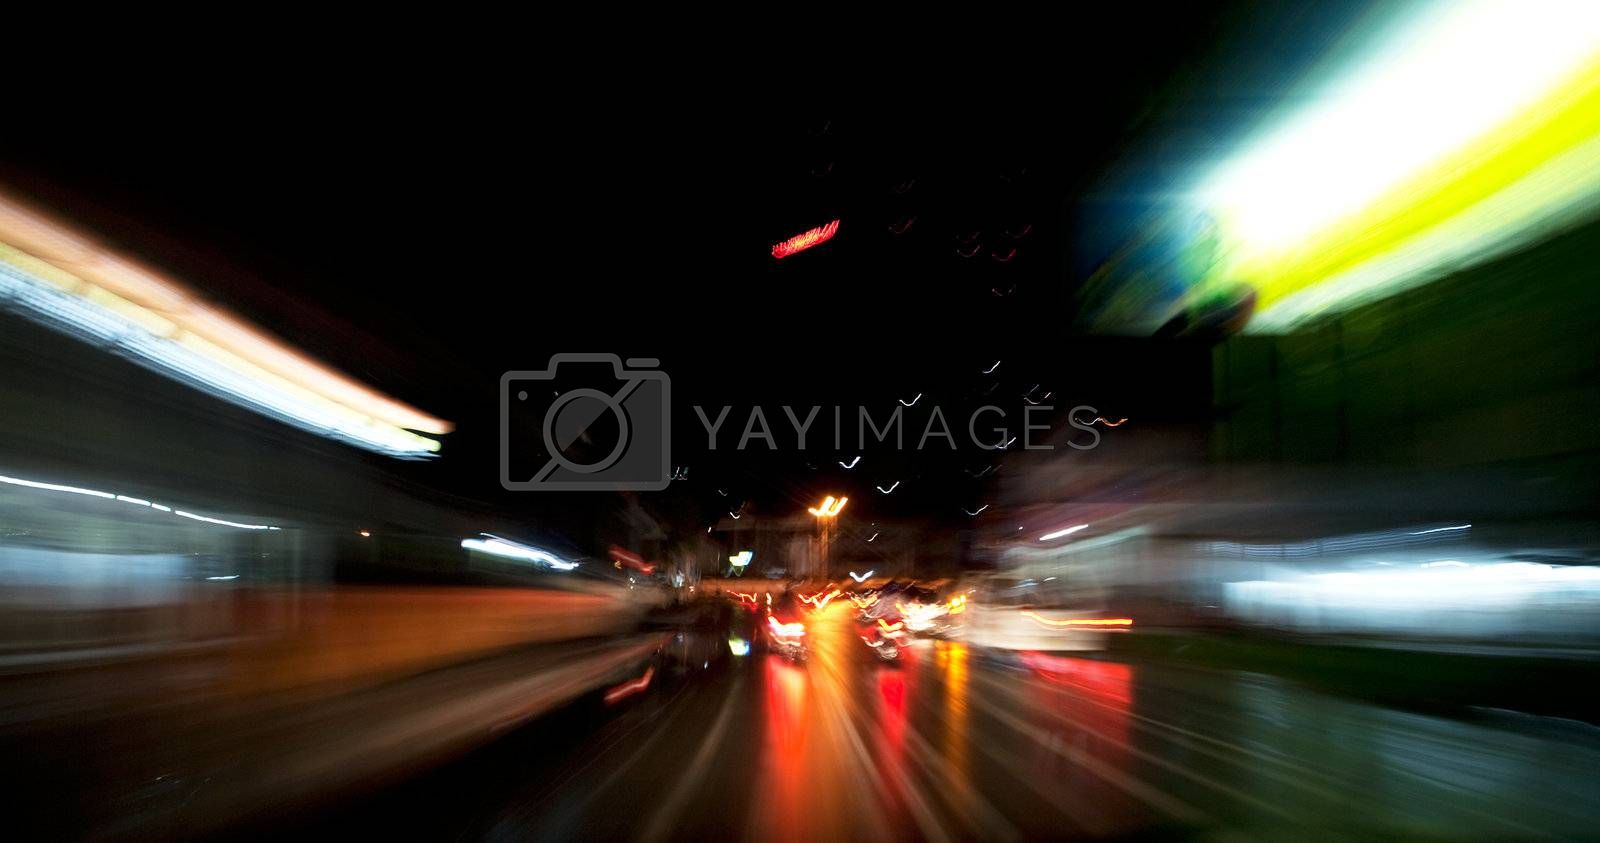 A motion blur with night driving